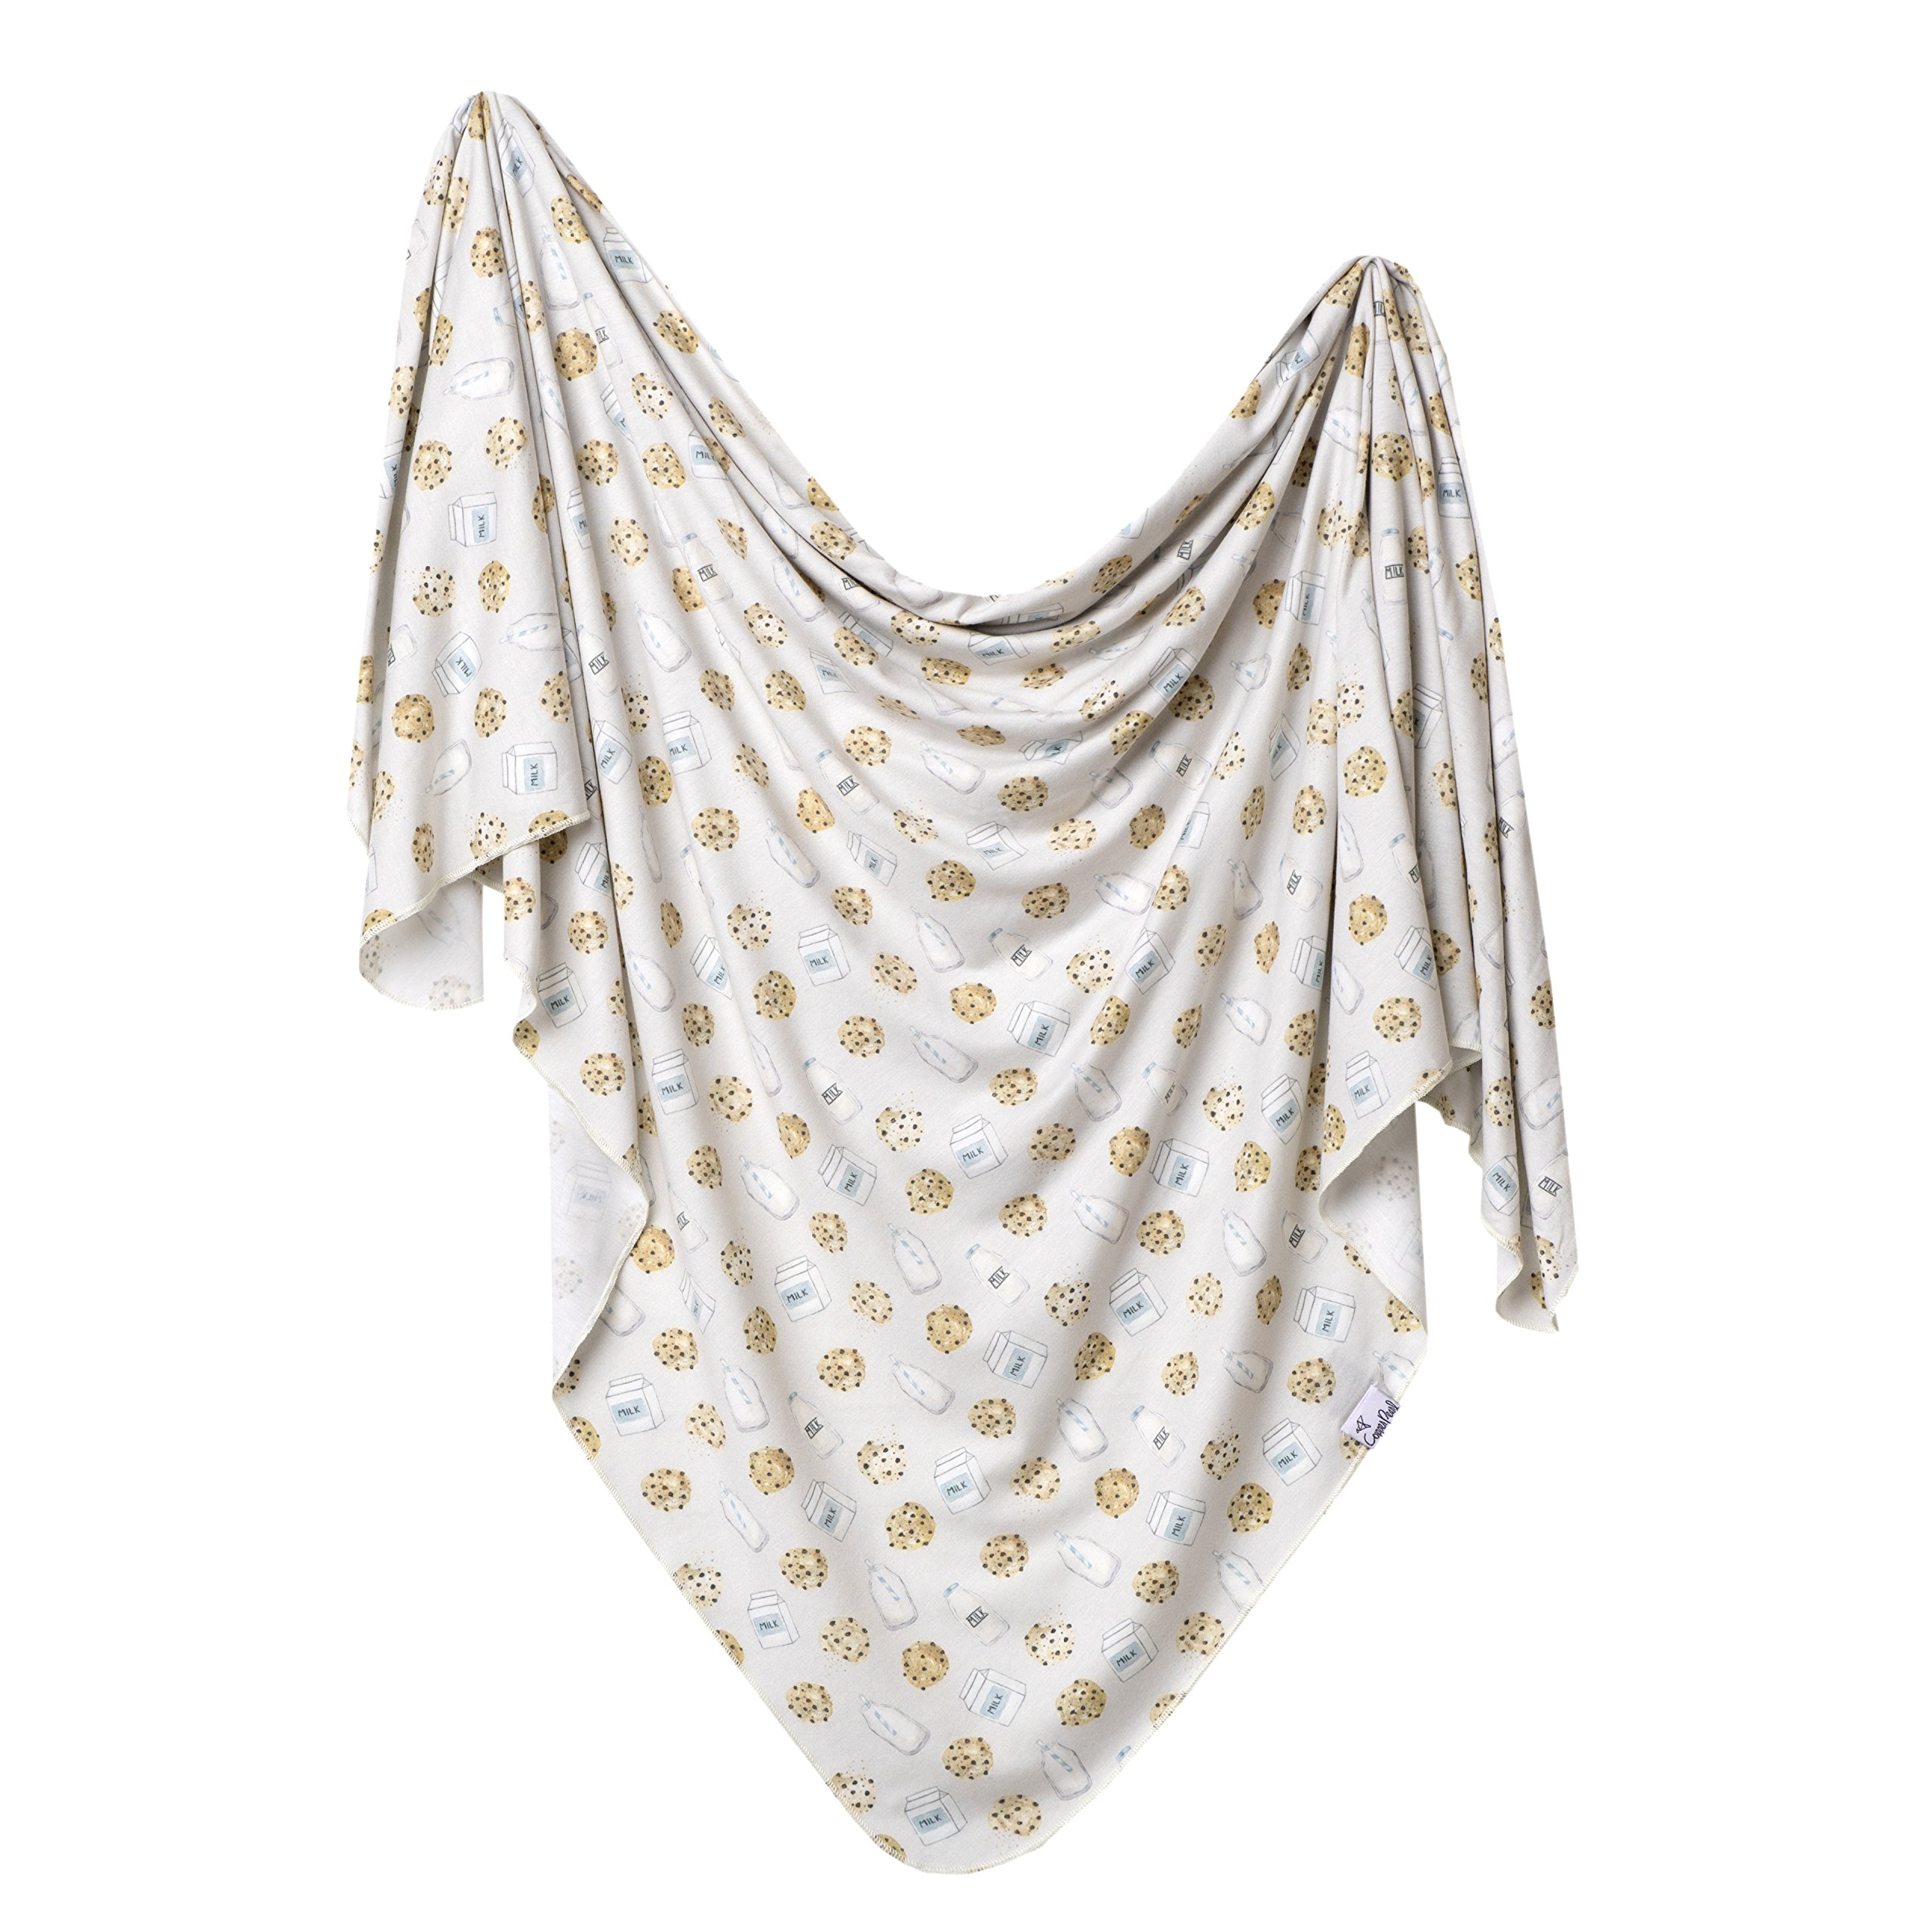 Large Premium Knit Baby Swaddle Receiving Blanket Chip by Copper Pearl